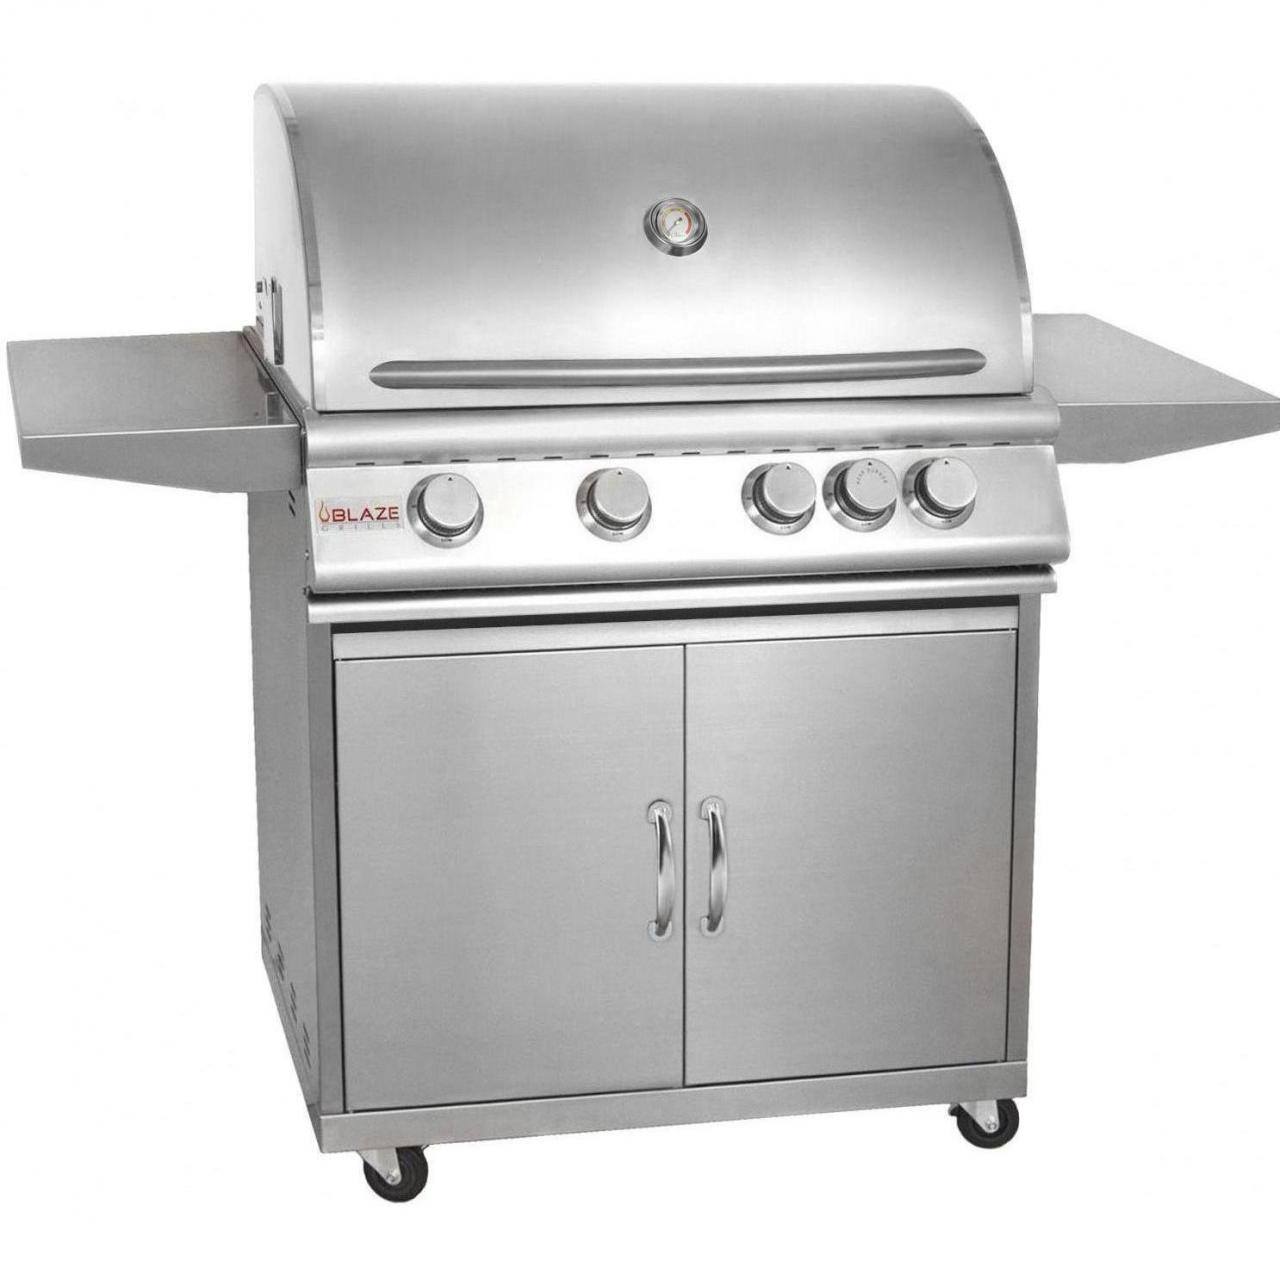 Buy Blaze 32-Inch 4-Burner Freestanding Propane Gas Grill With Rear Infrared Burner - BLZ-4-LP at wholesale prices